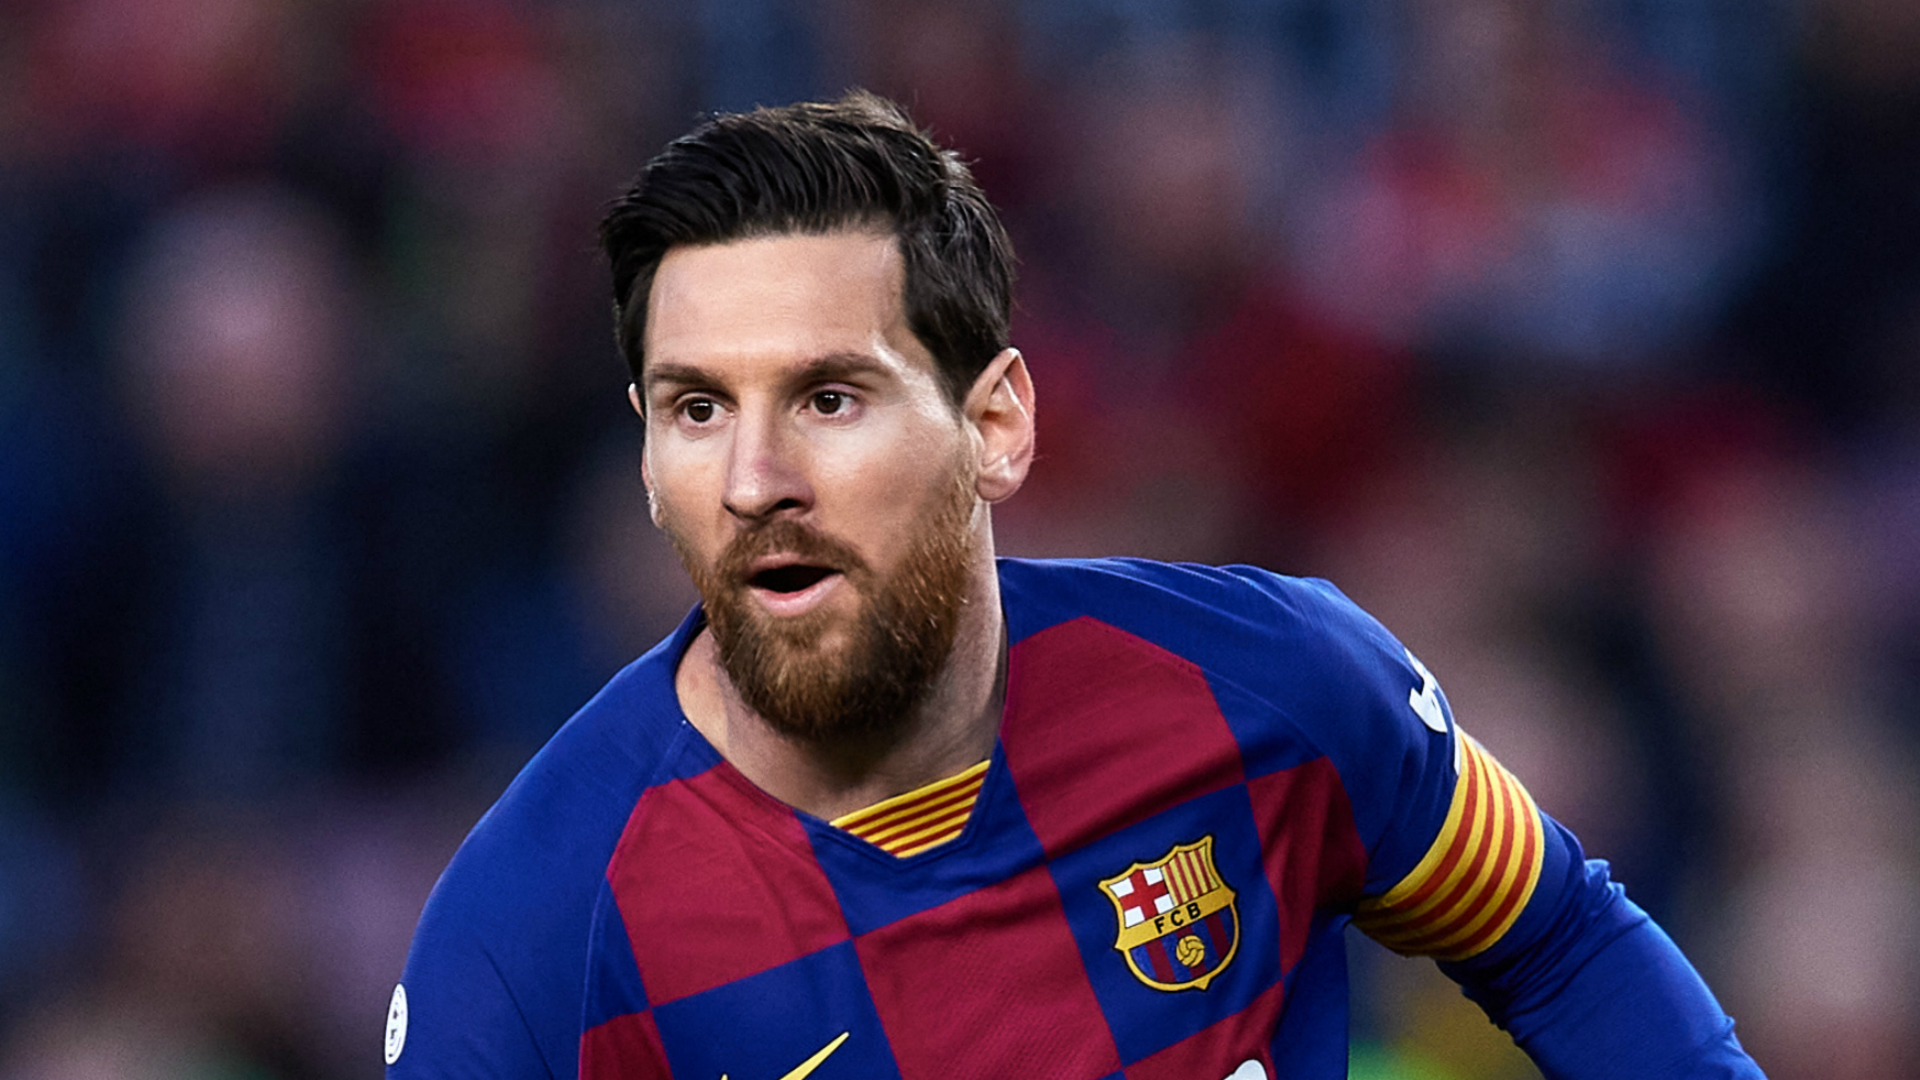 Fabregas 'fully confident' Messi will stay at Barca, open to coaching Madrid